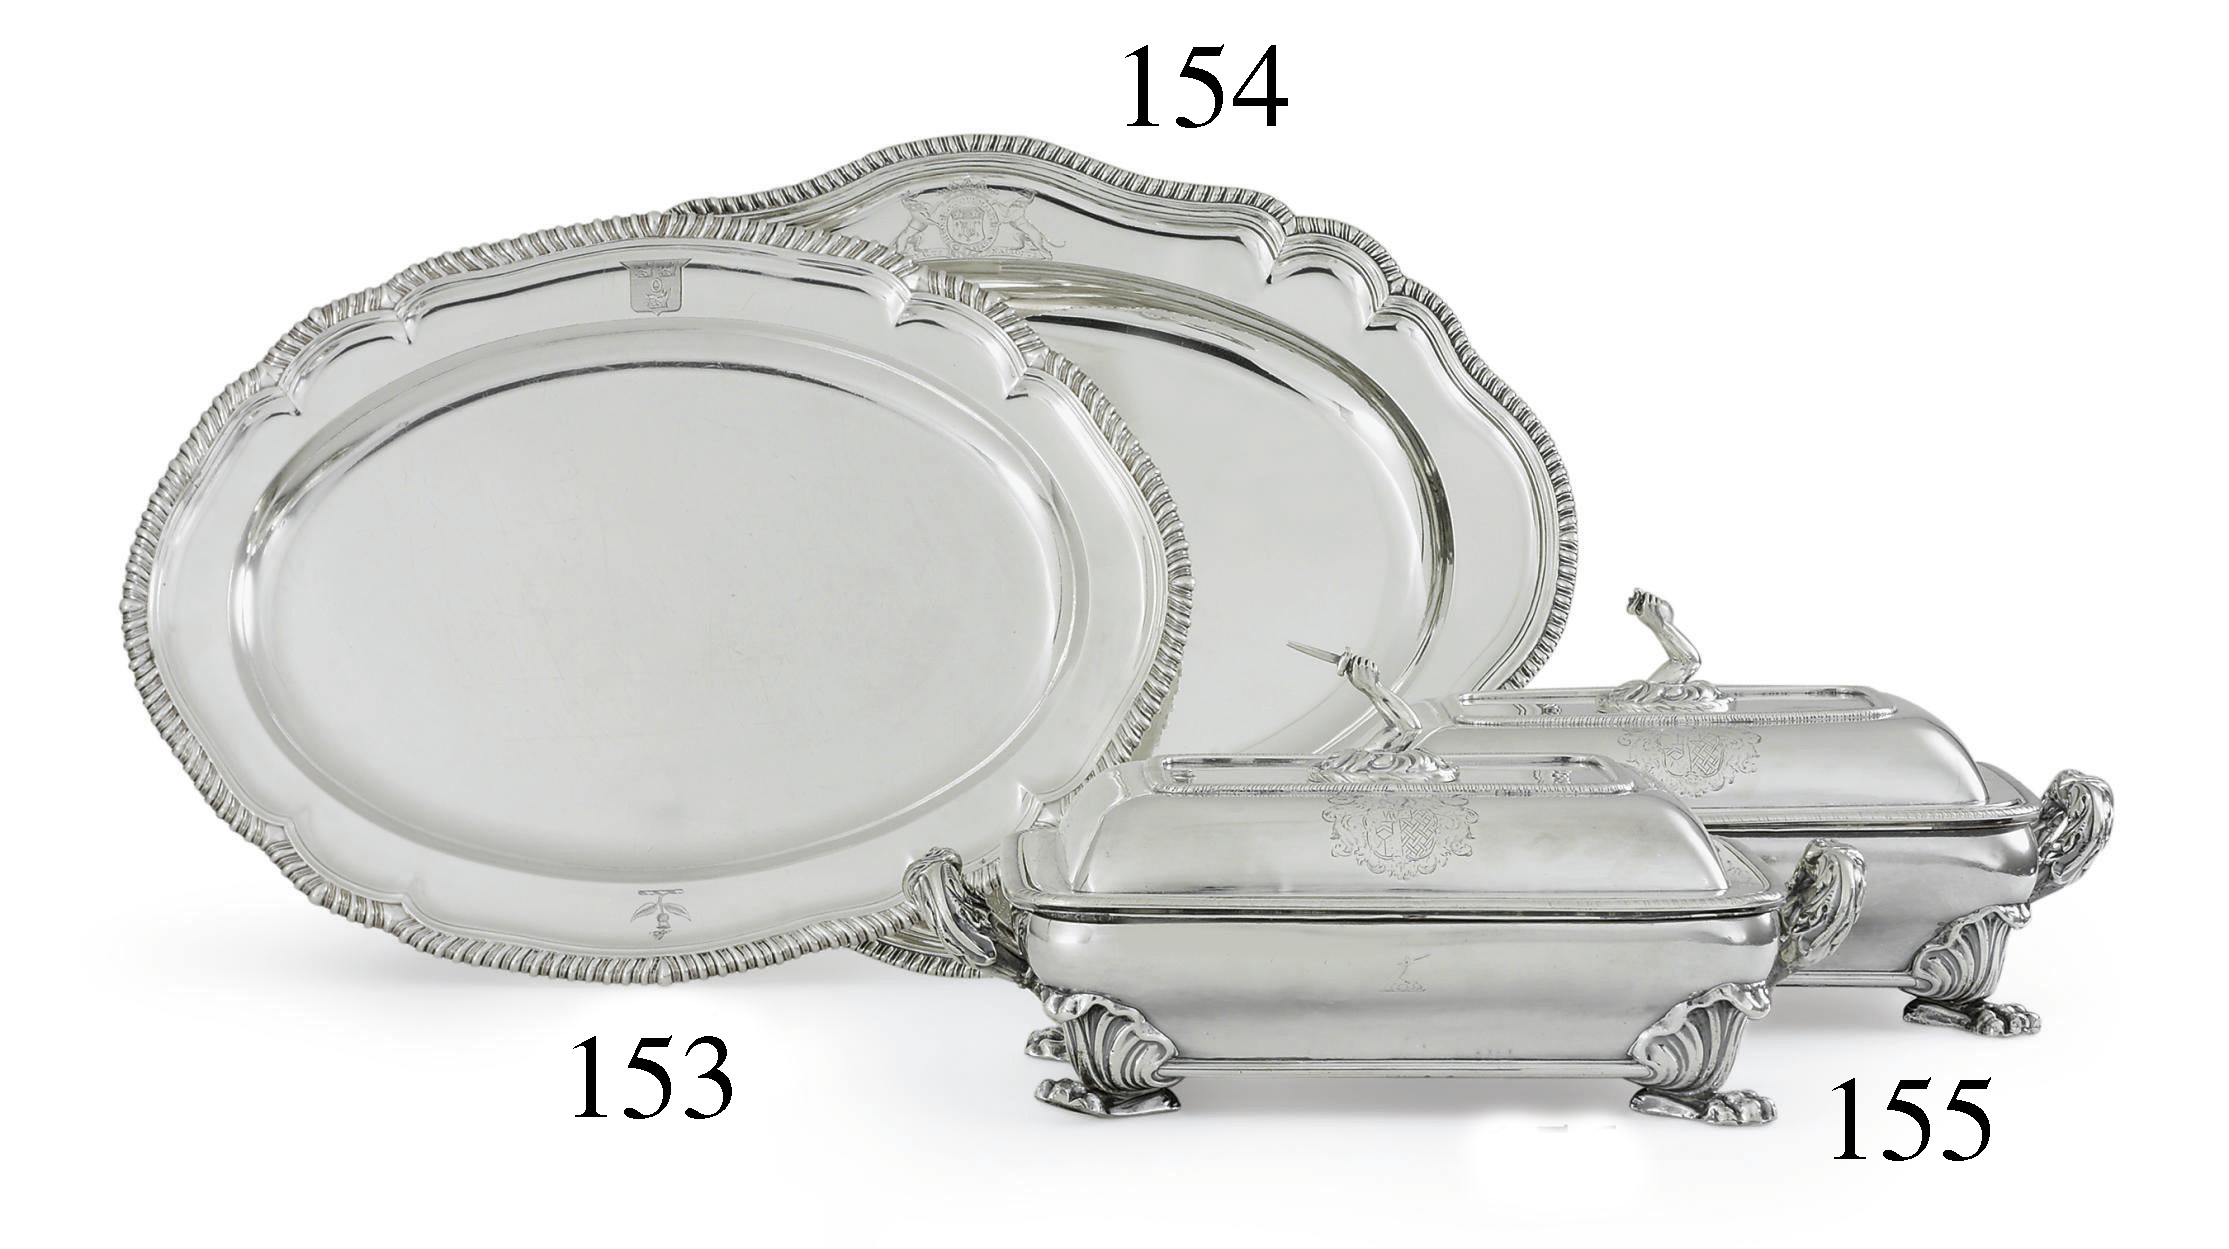 A PAIR OF GEORGE III SILVER ENTREE DISHES ON SHEFFIELD-PLATED STANDS